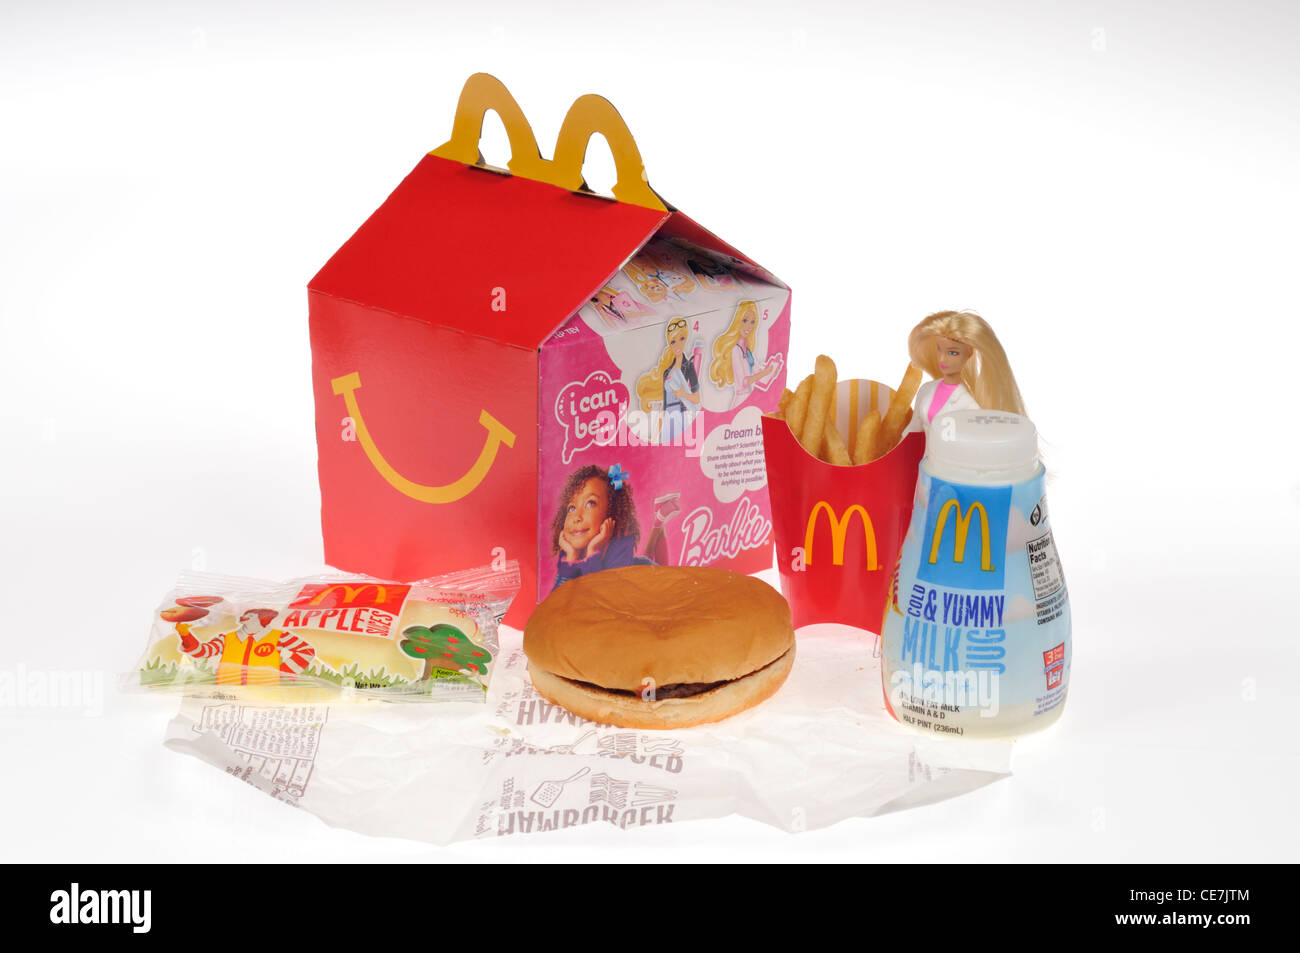 McDonald's Barbie Happy Meal with hamburger, french fries, milk  and apple dippers on white background cutout - Stock Image